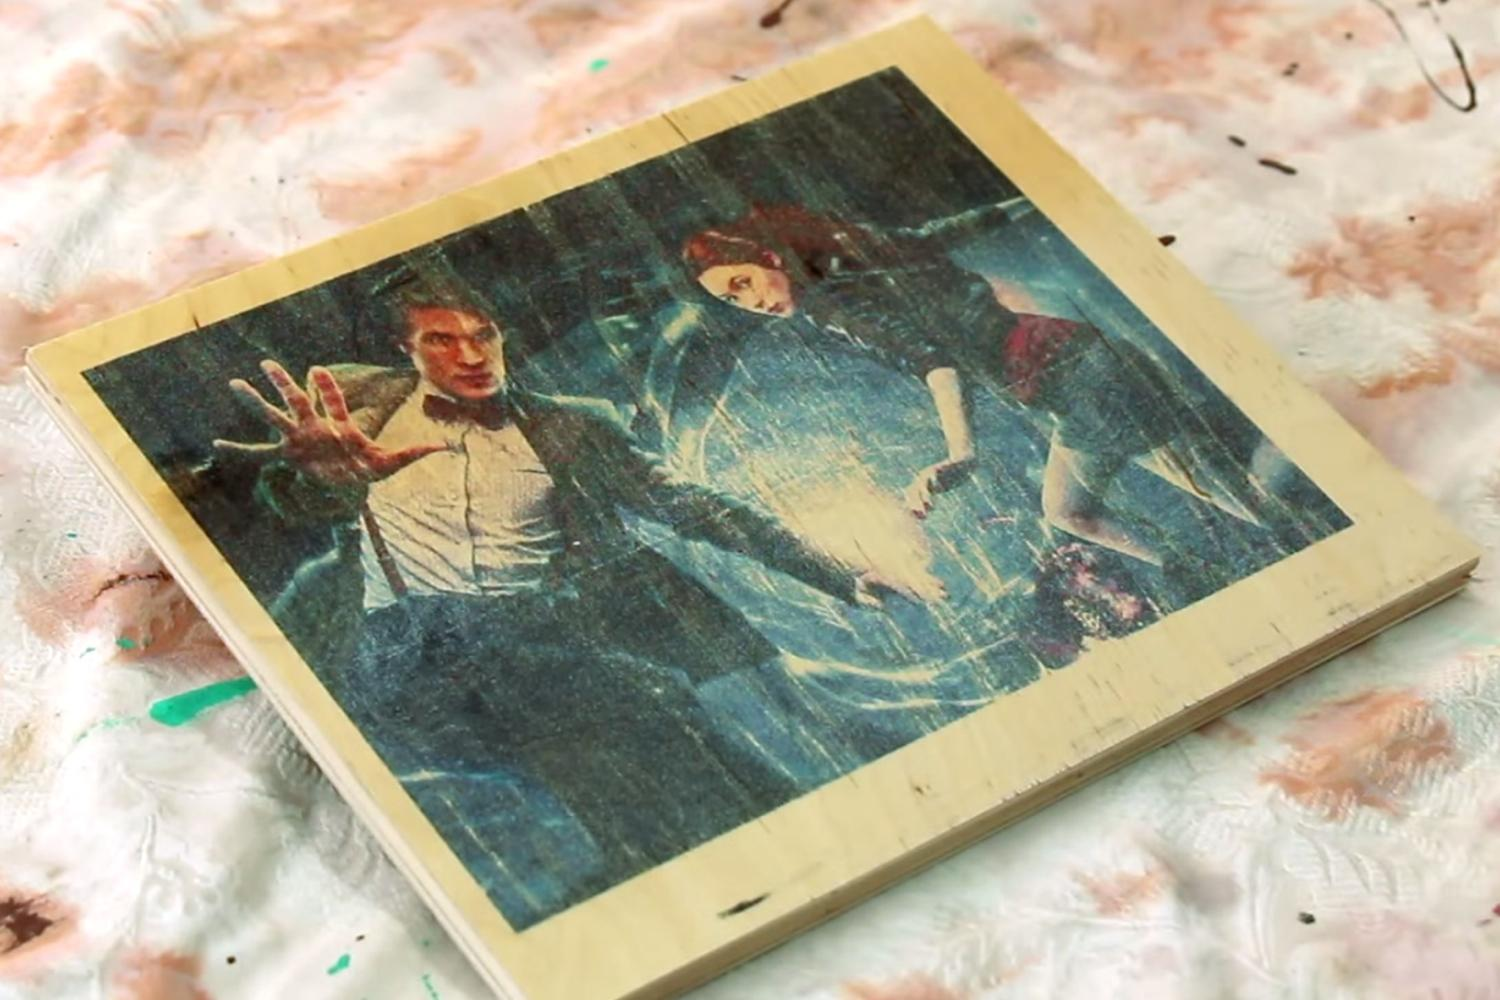 Diy Video Shows You How To Print On Wood With An Inkjet